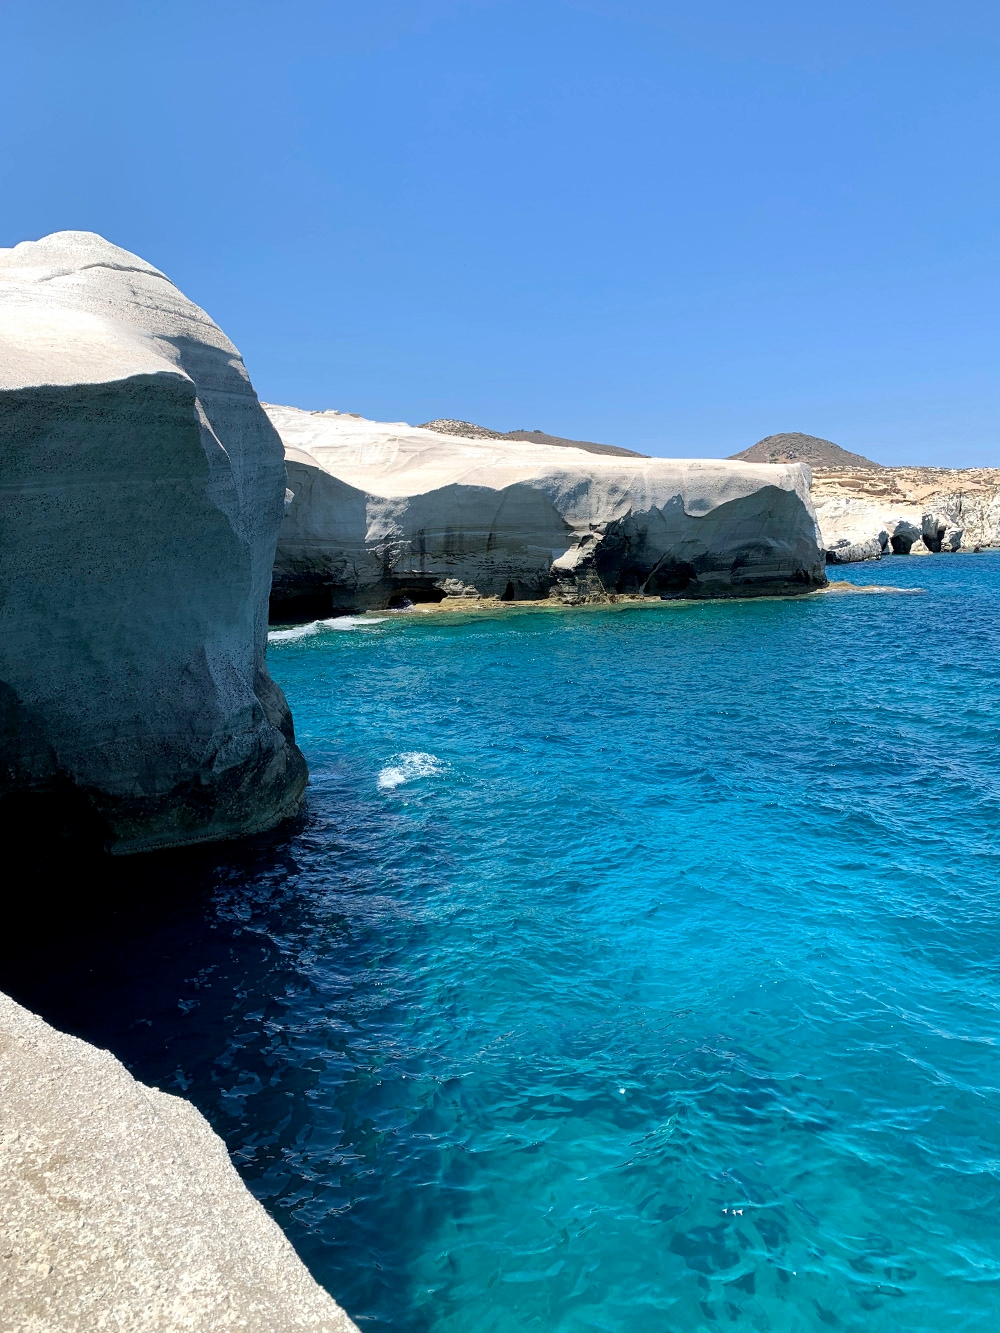 The coast of Sarakiniko Beach, where the bright blue water meets the white volcanic rock which is shaped similarly to a moonscape.